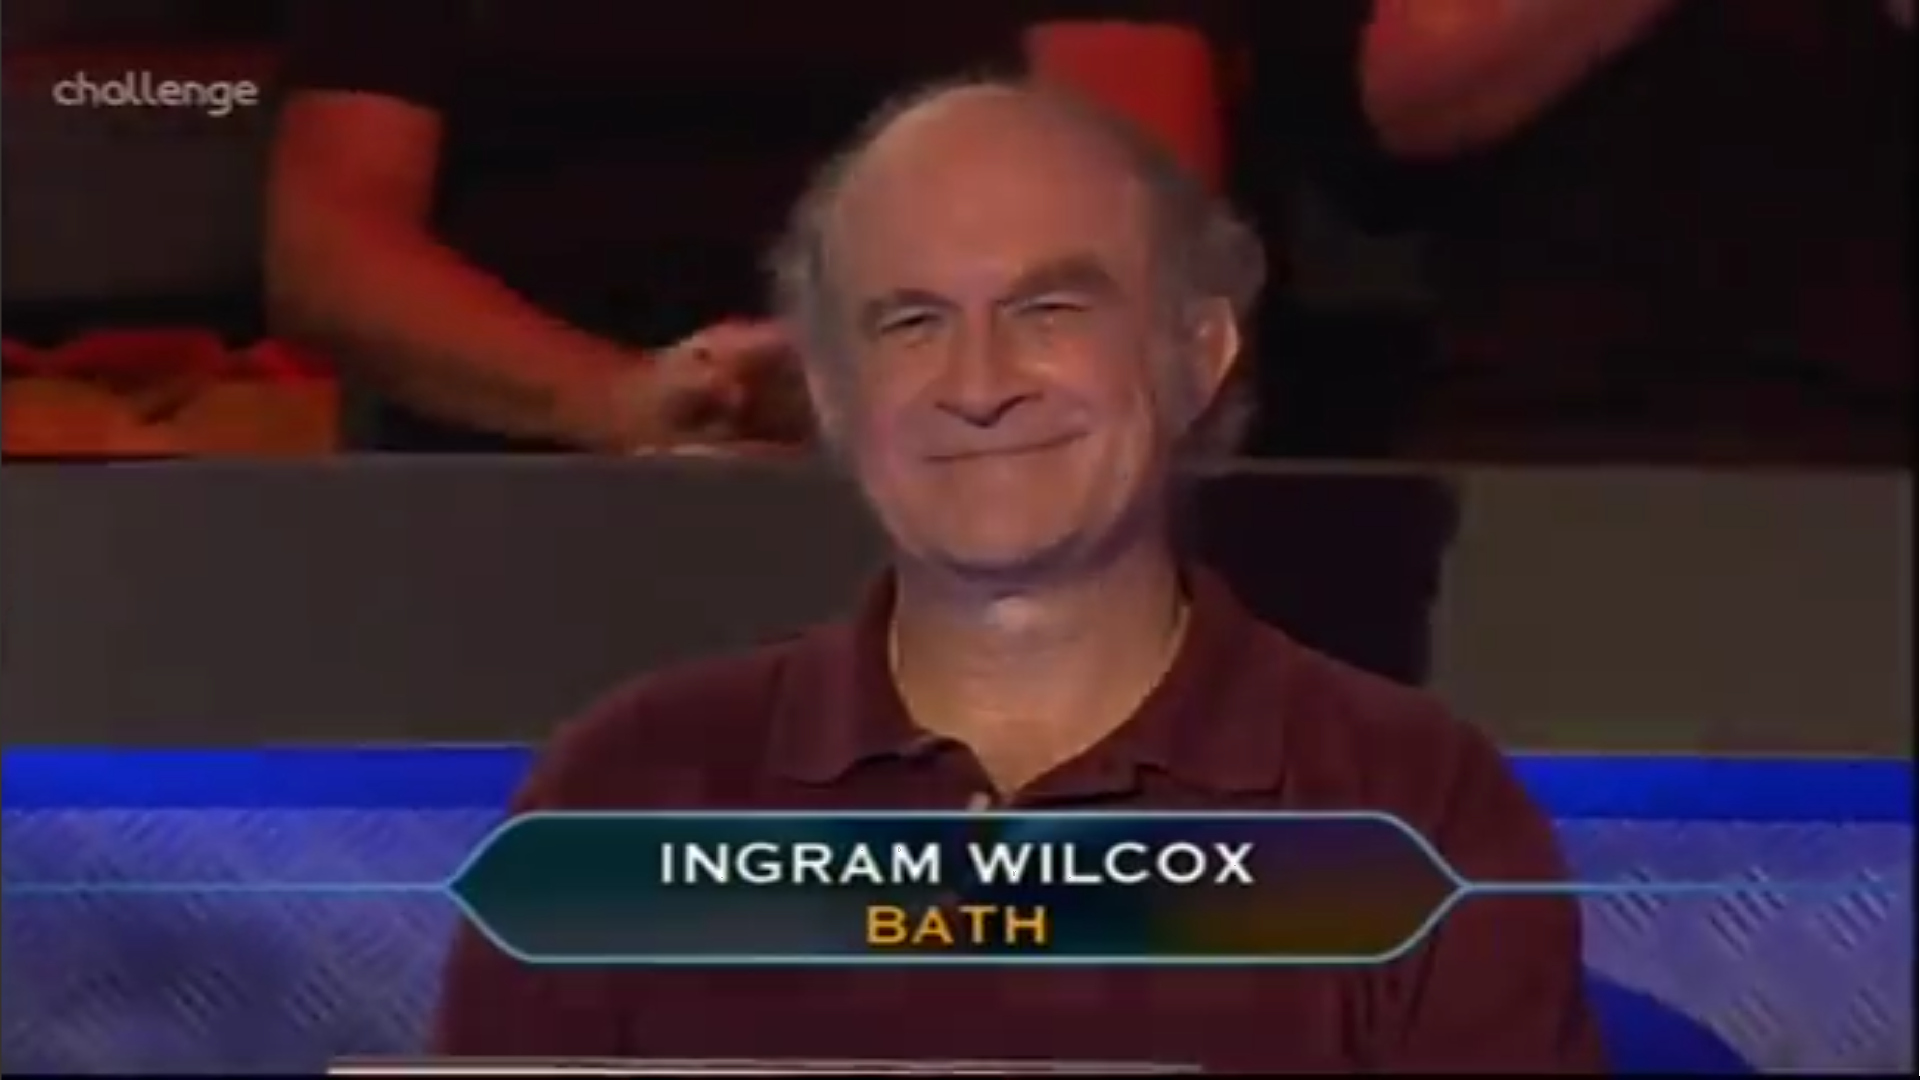 Who wants to be a millionaire: the host of the program and his biography